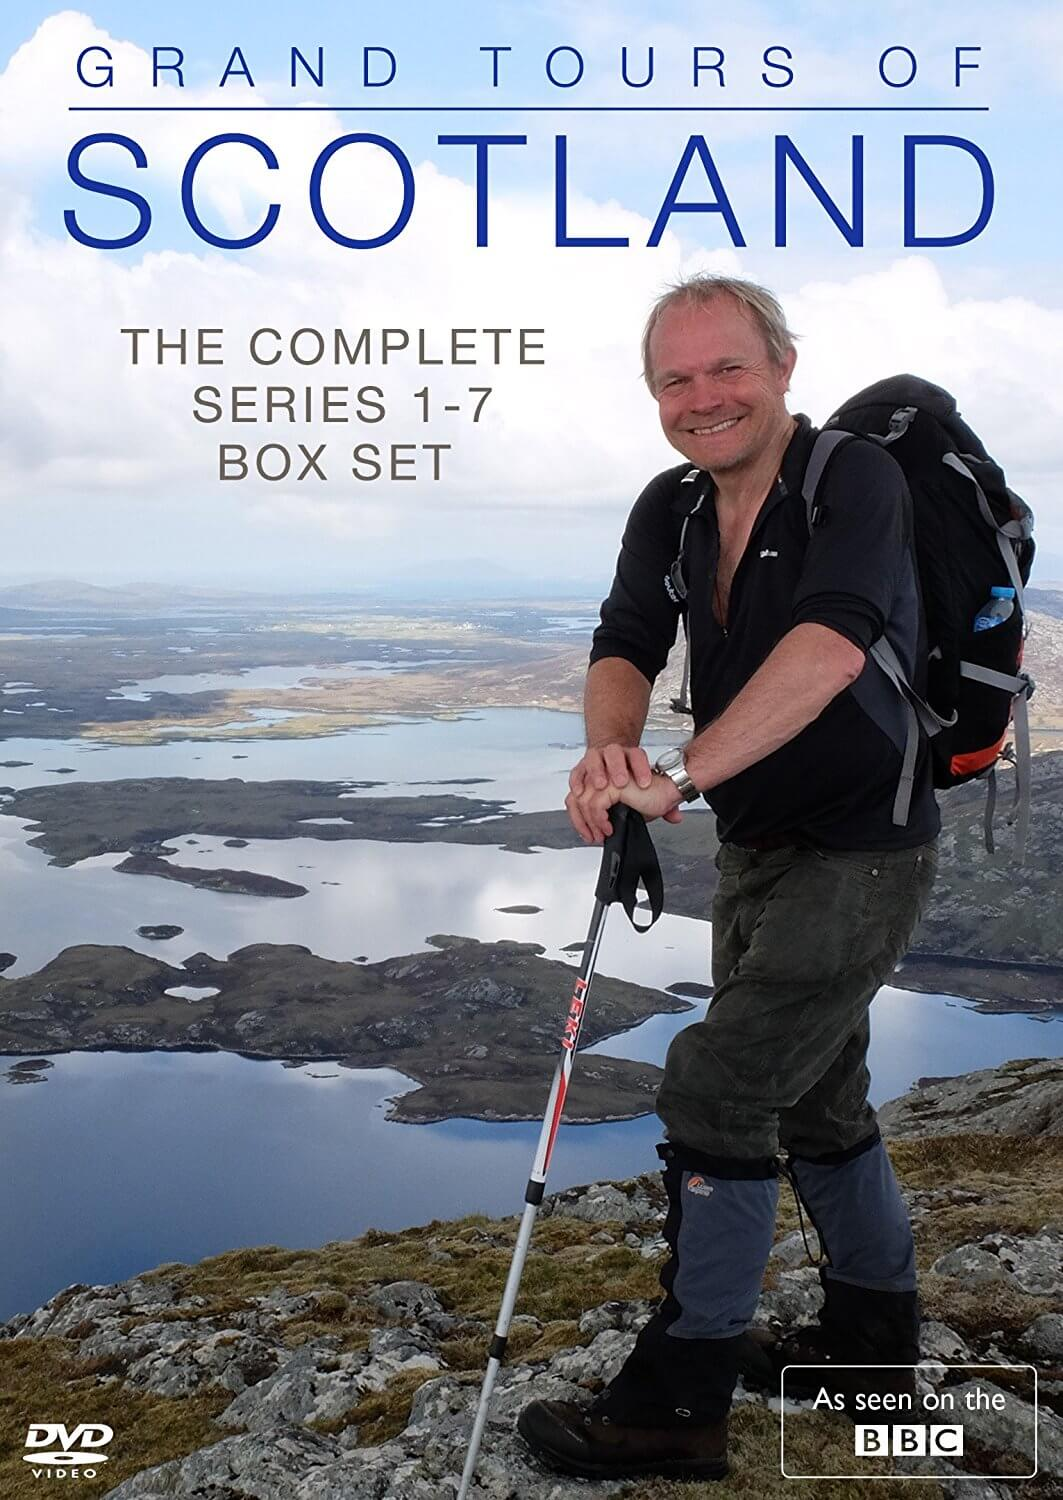 Grand Tours of Scotland - Series 1-7 Complete Boxset